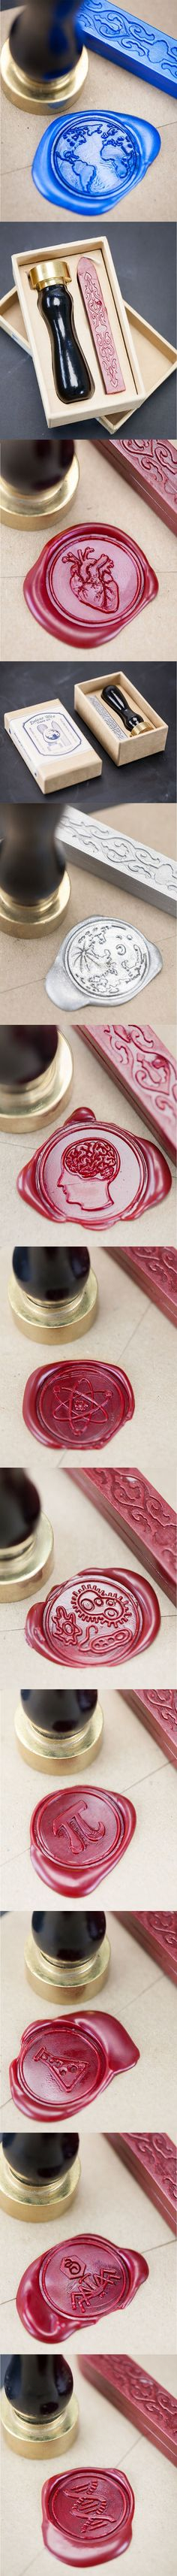 Science wax seals for nerdy wedding invites   awesome correspondence.  Wedding Favors c4eab39d5b702